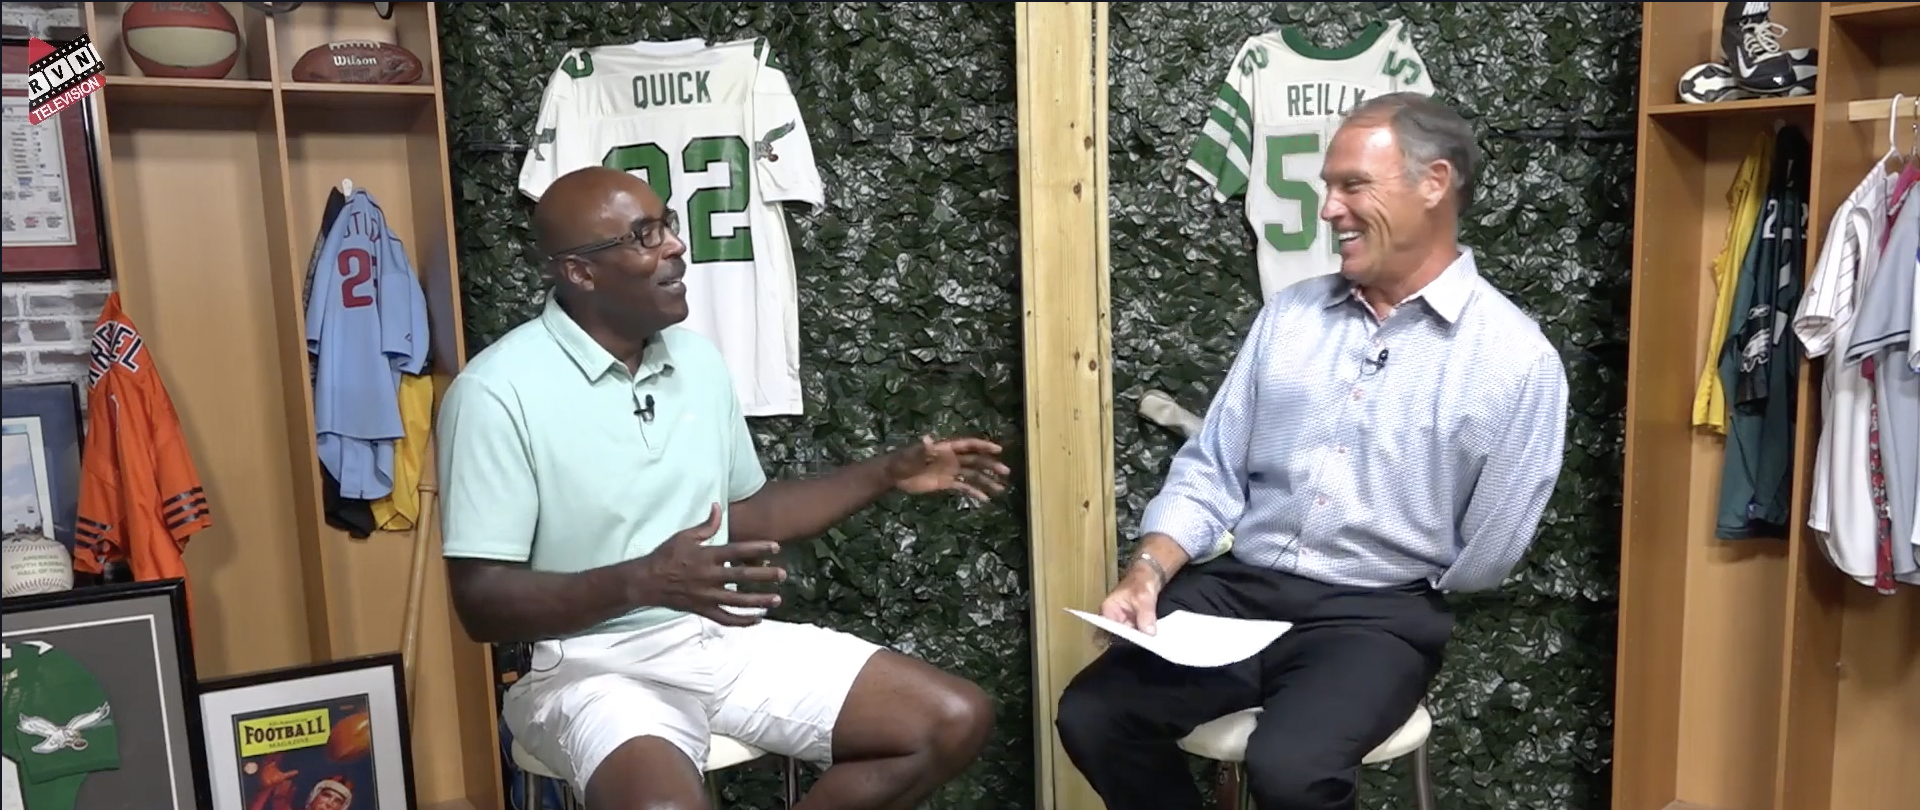 Mike Quick and Kevin Reilly on Behind The Lines